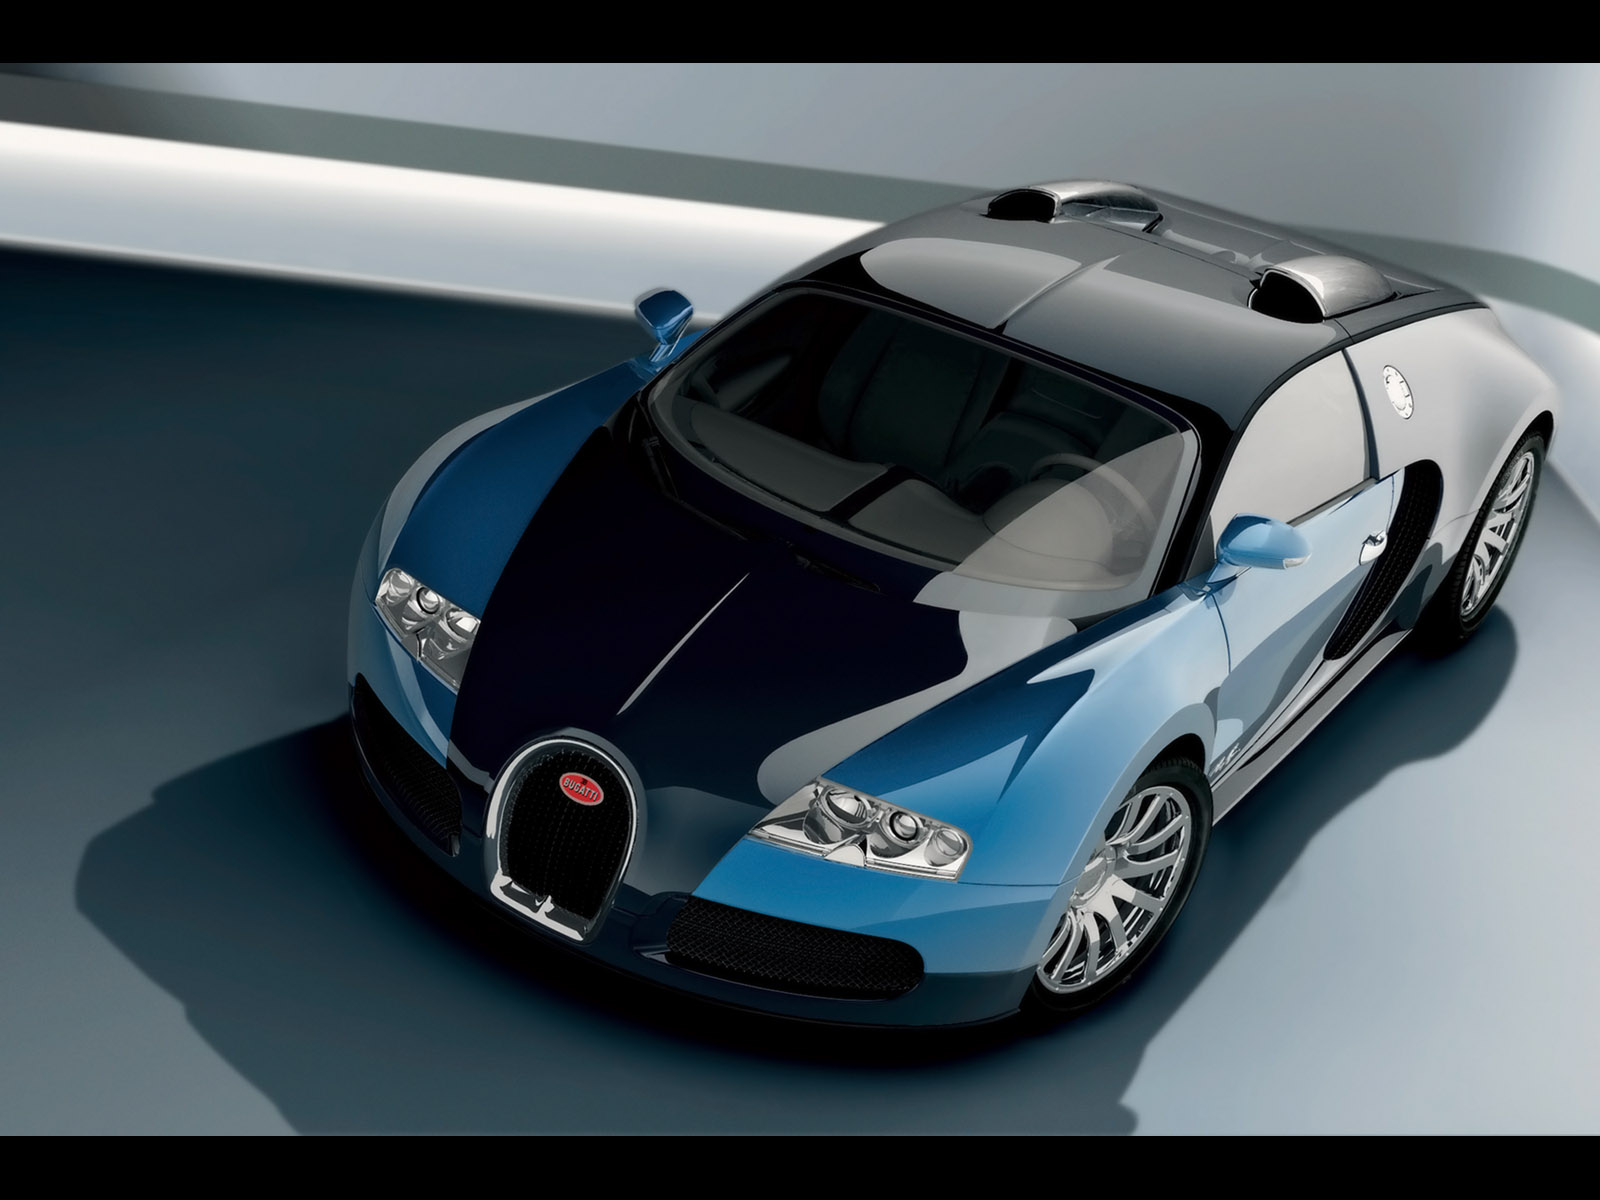 Bugatti Veyron 1600x900 Car Wallpaper